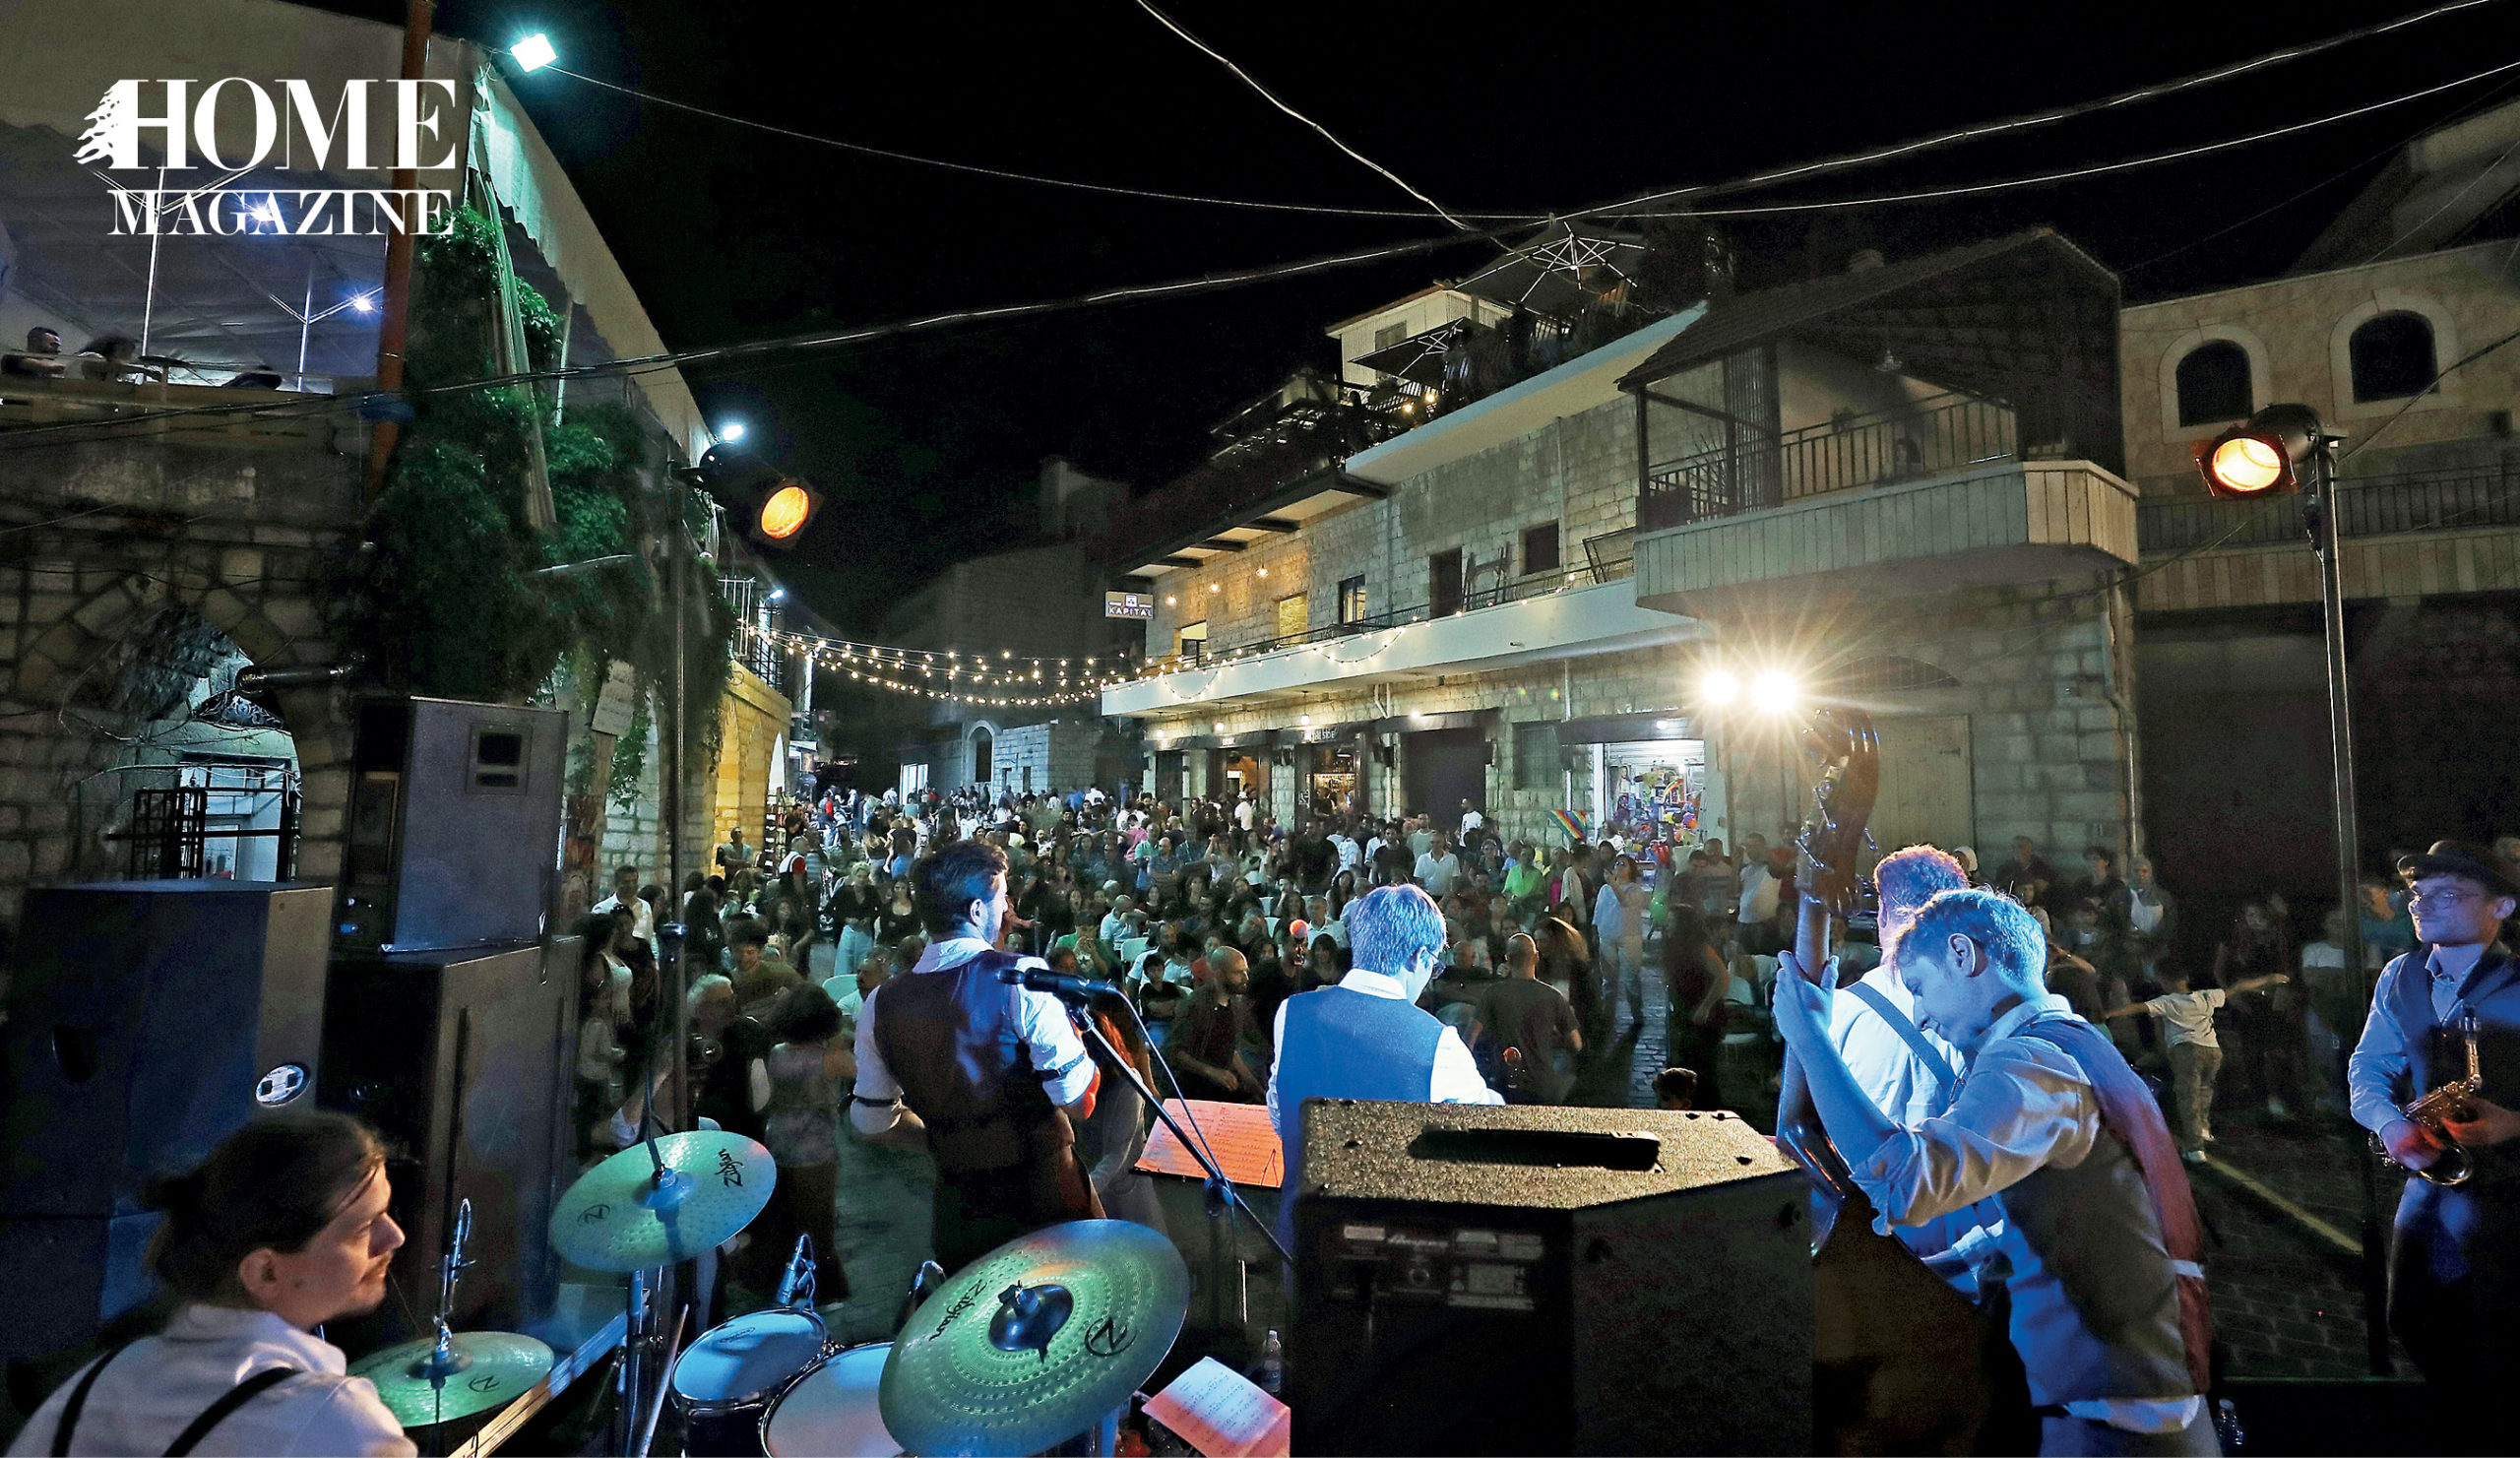 Band performing with crowd amidst buildings and lighting